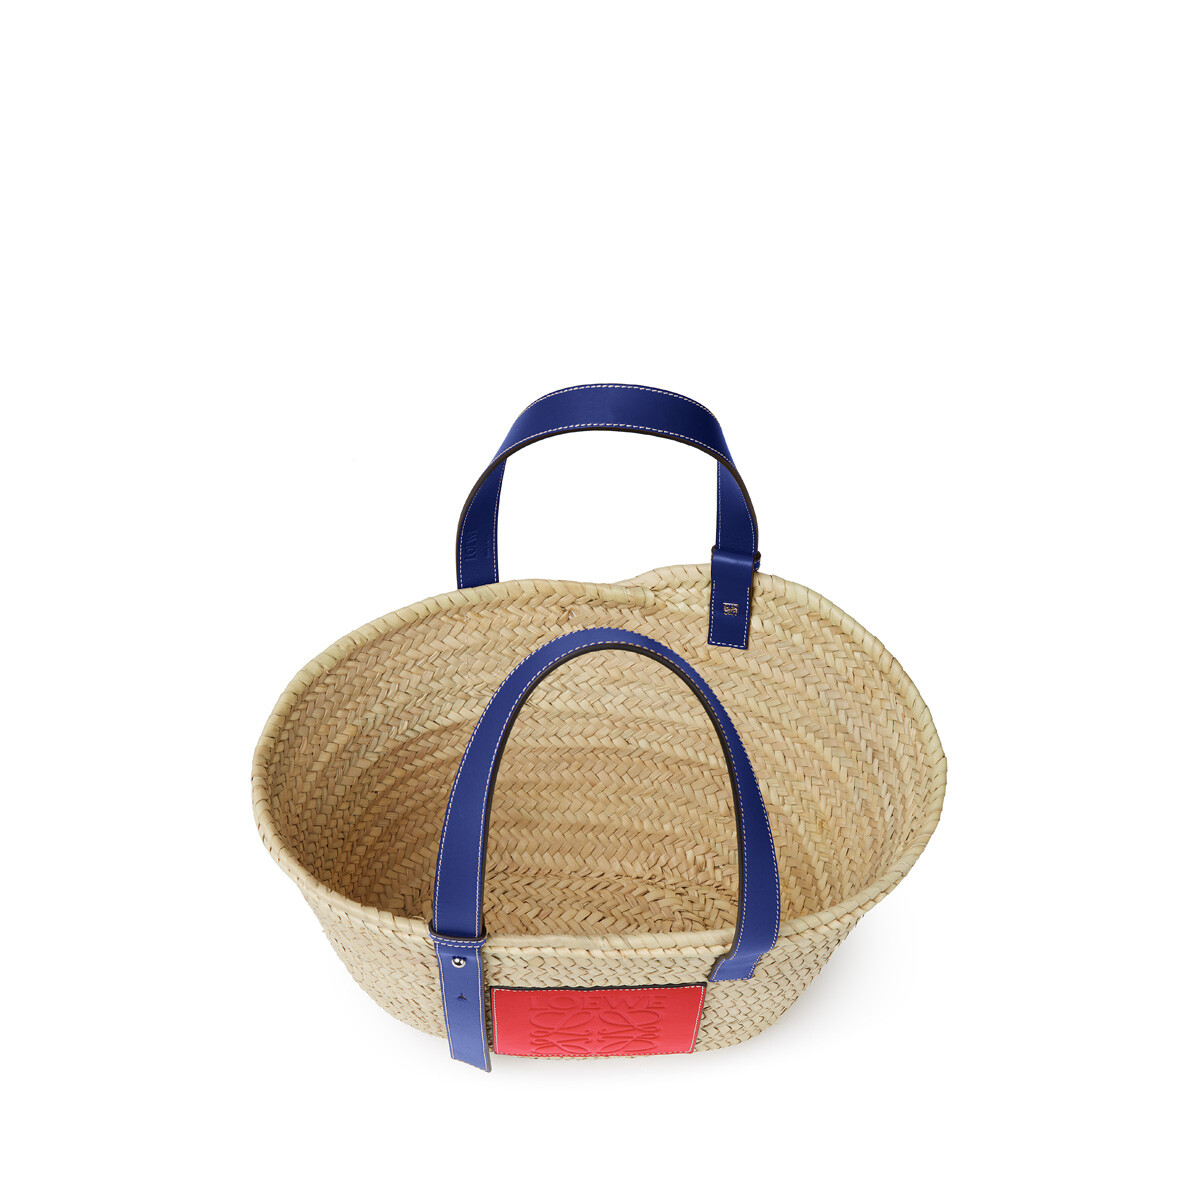 LOEWE London Basket Small Bag Natural/Primary Red front